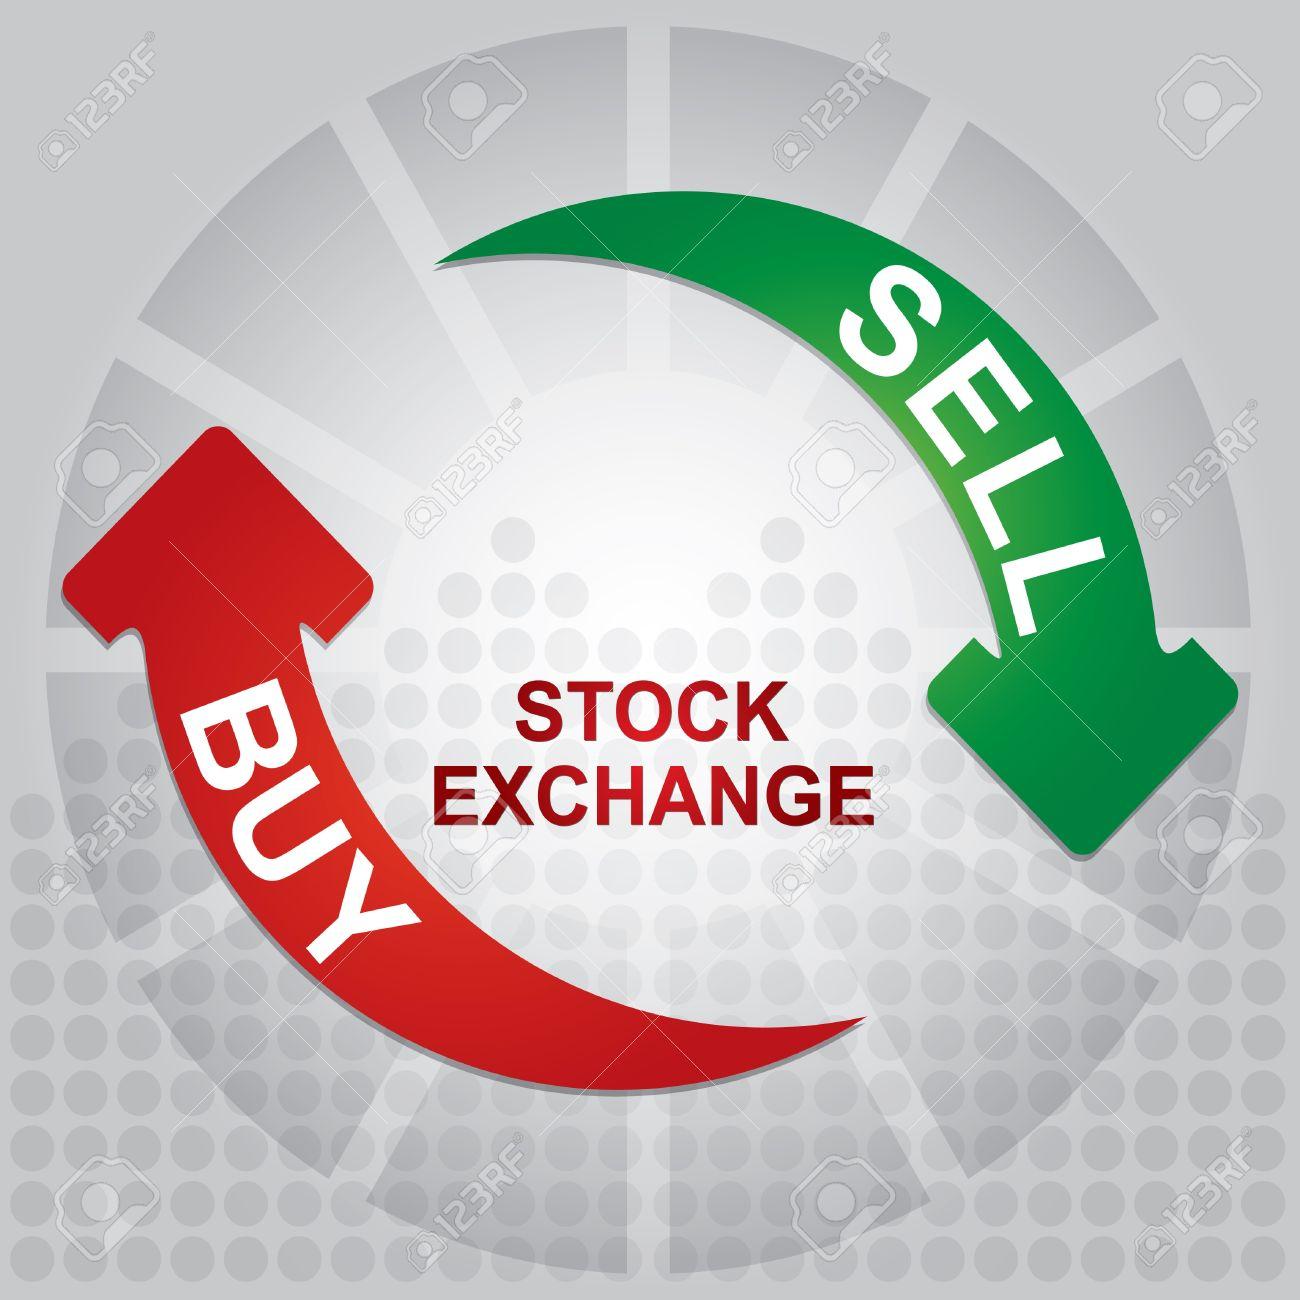 Clipart stock exchange image royalty free download Stock exchange clip art - ClipartFest image royalty free download